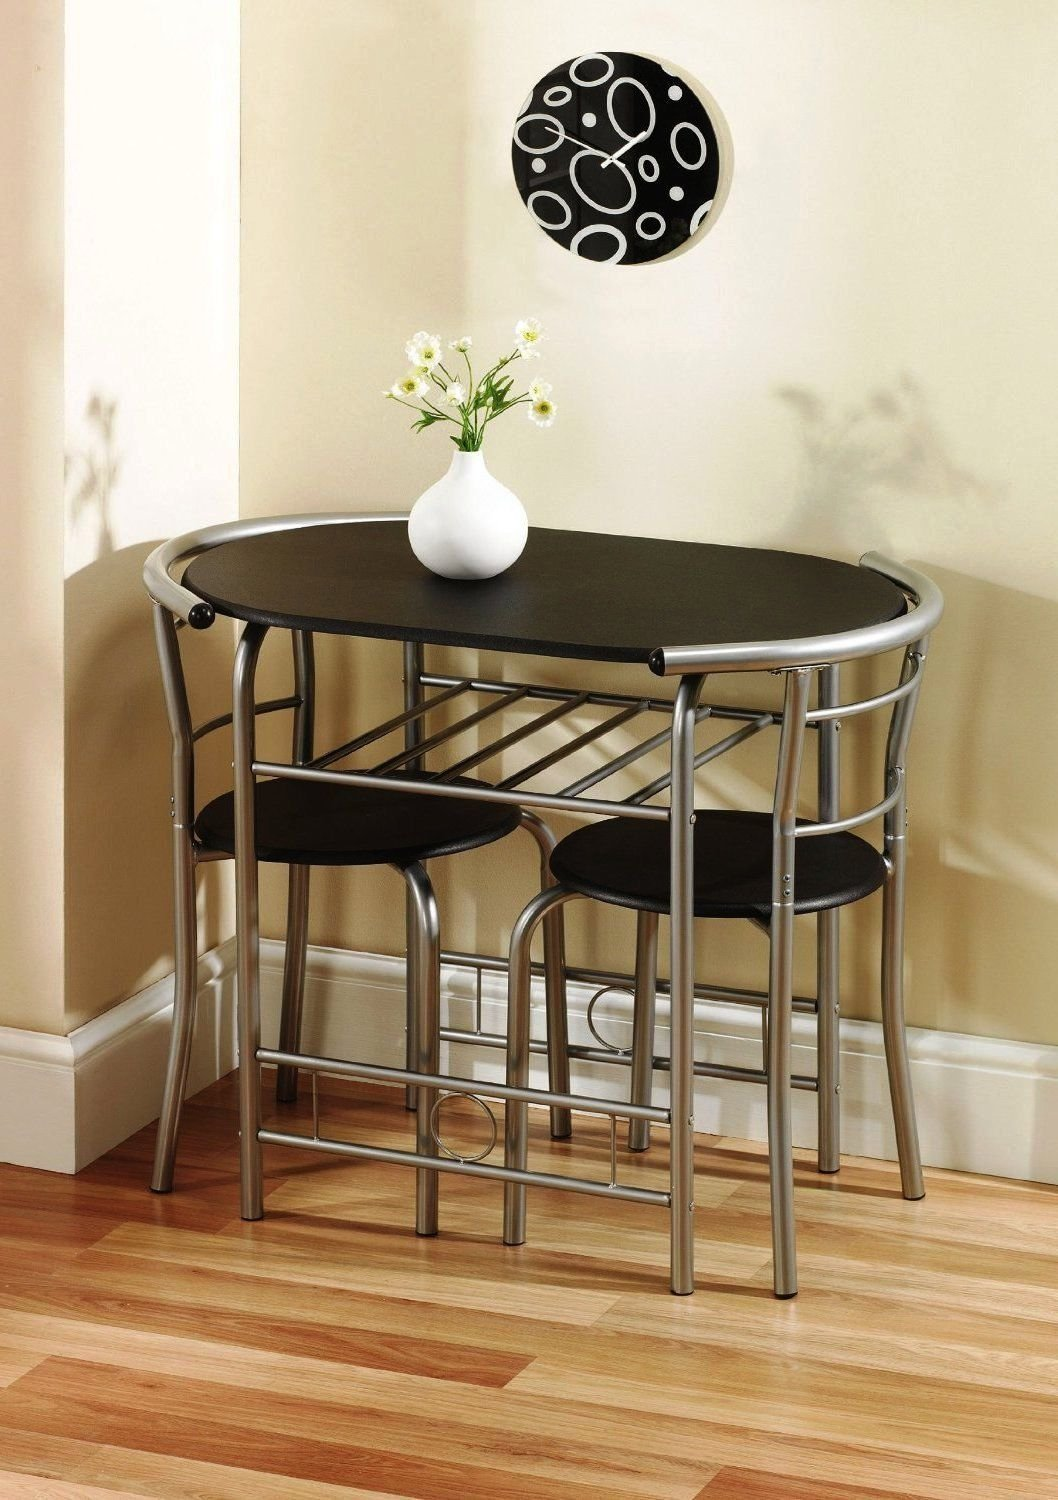 Amazon.com - Krasavic 3 Piece Kitchen Dining Table Set for 2 with Stack Chairs Wood Top Metal Finish Black/Silver - Table \u0026 Chair Sets & Amazon.com - Krasavic 3 Piece Kitchen Dining Table Set for 2 with ...